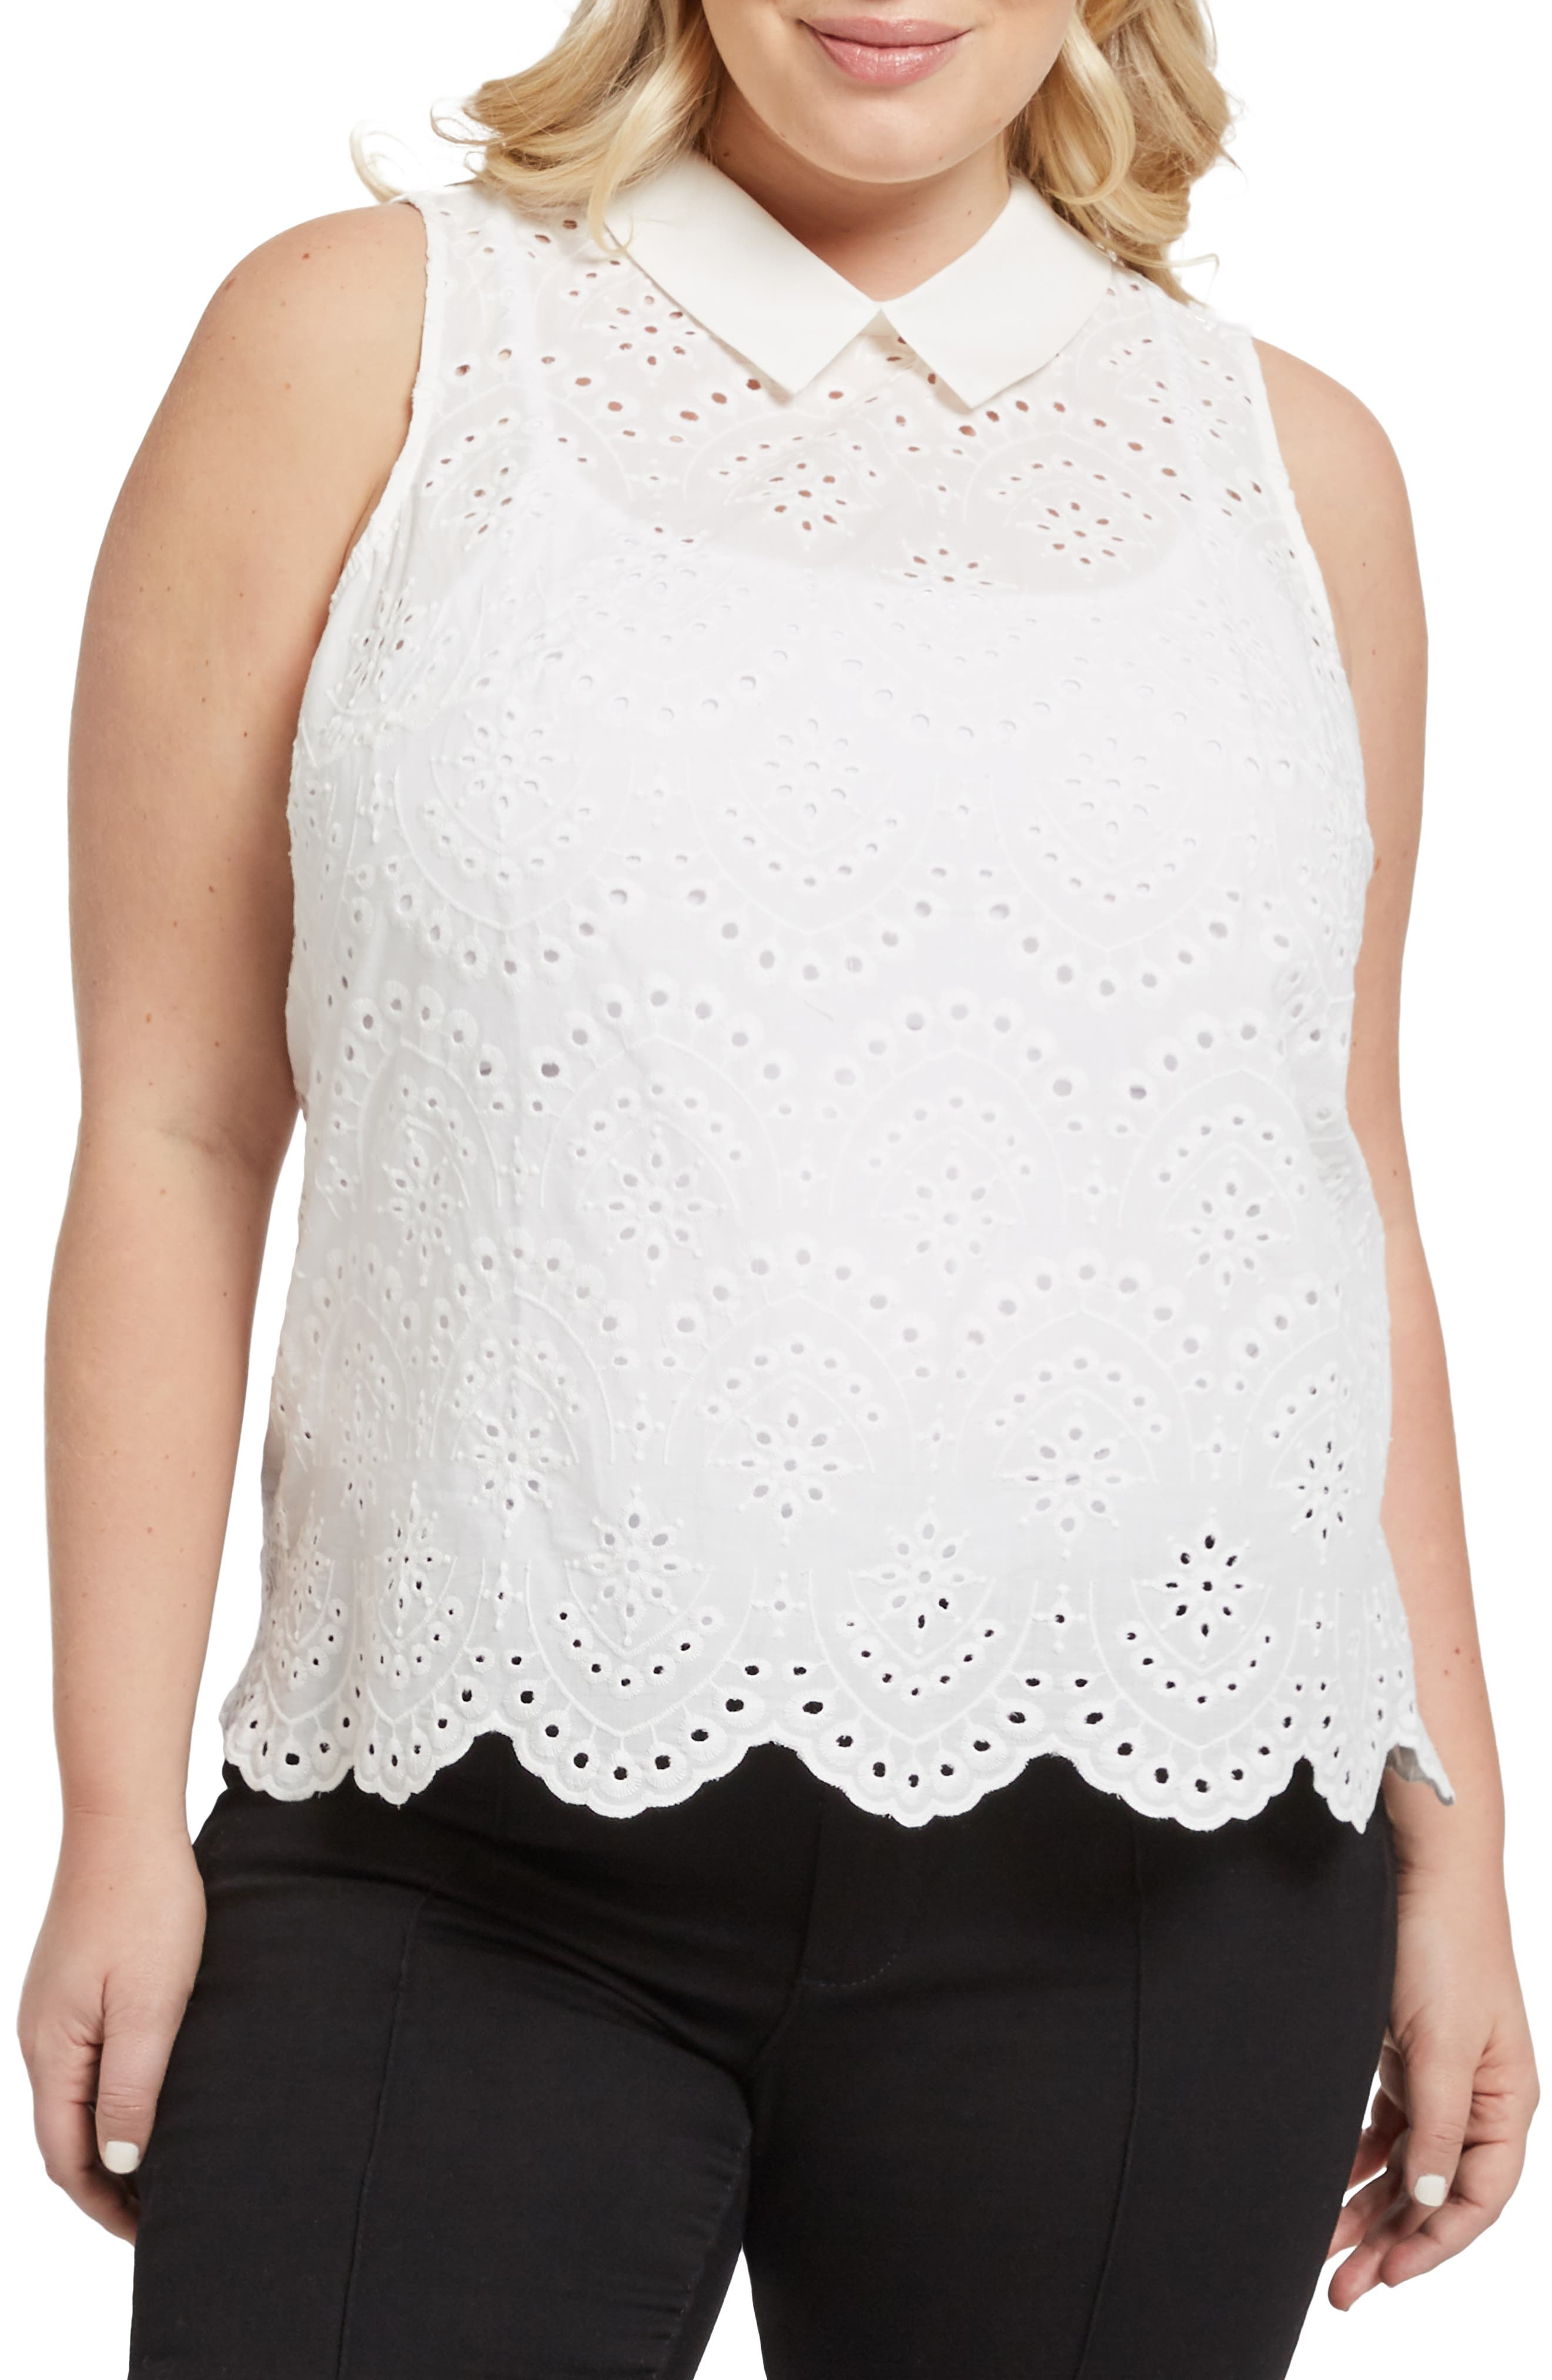 MODCLOTH, Eyelet in the Sun Top, Alternate thumbnail 2, color, WHITE